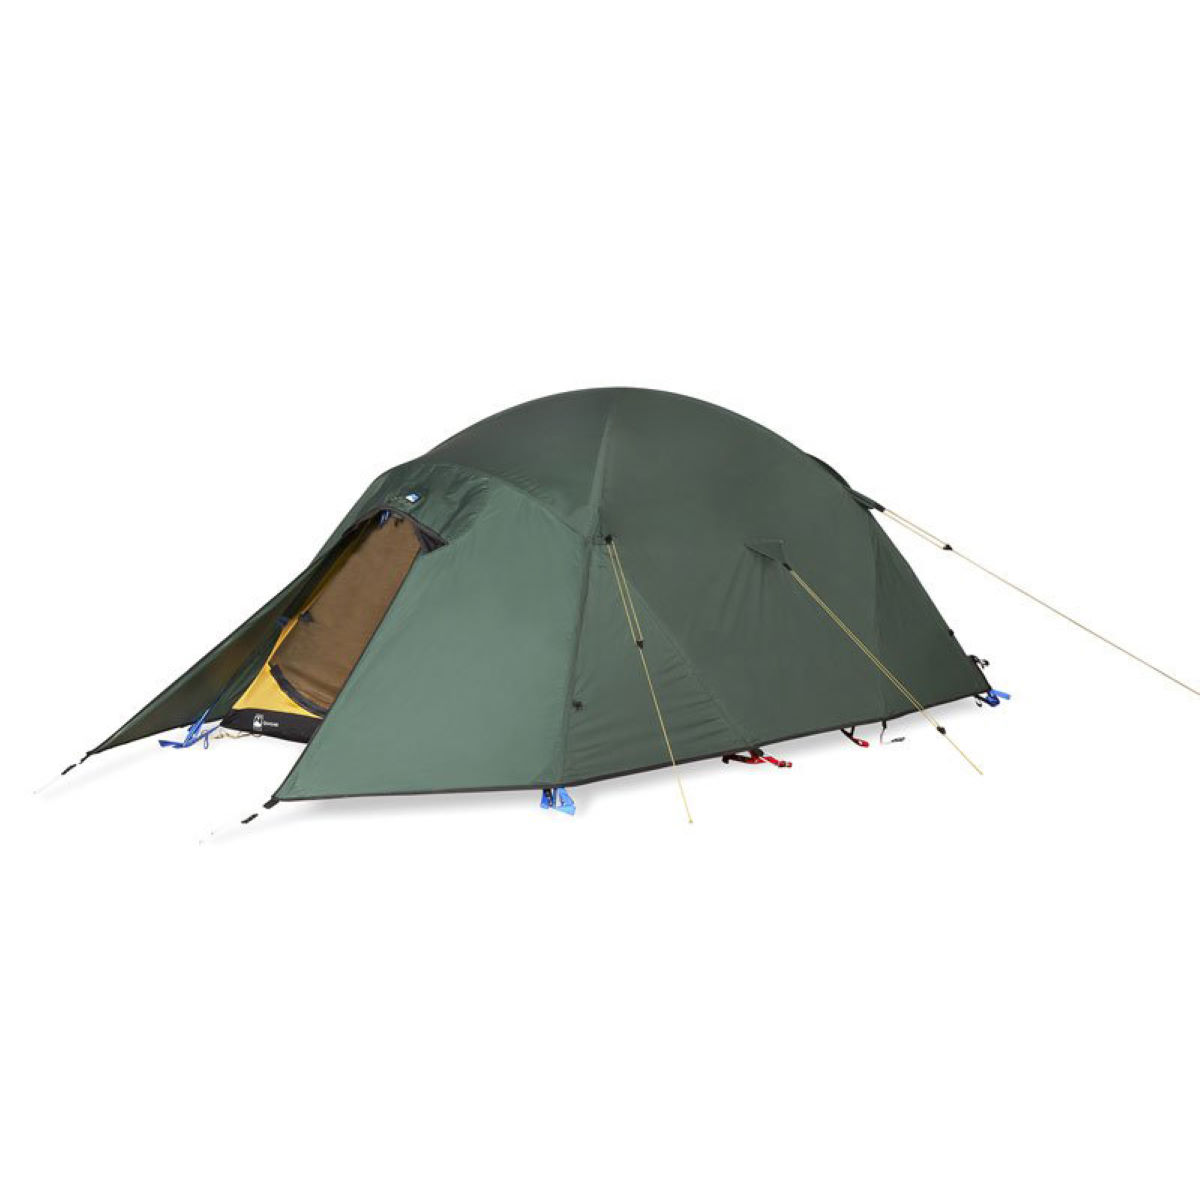 Terra nova quasar 2 tent buyer compare tent prices save tent buyer compare tent prices - Terras tent ...